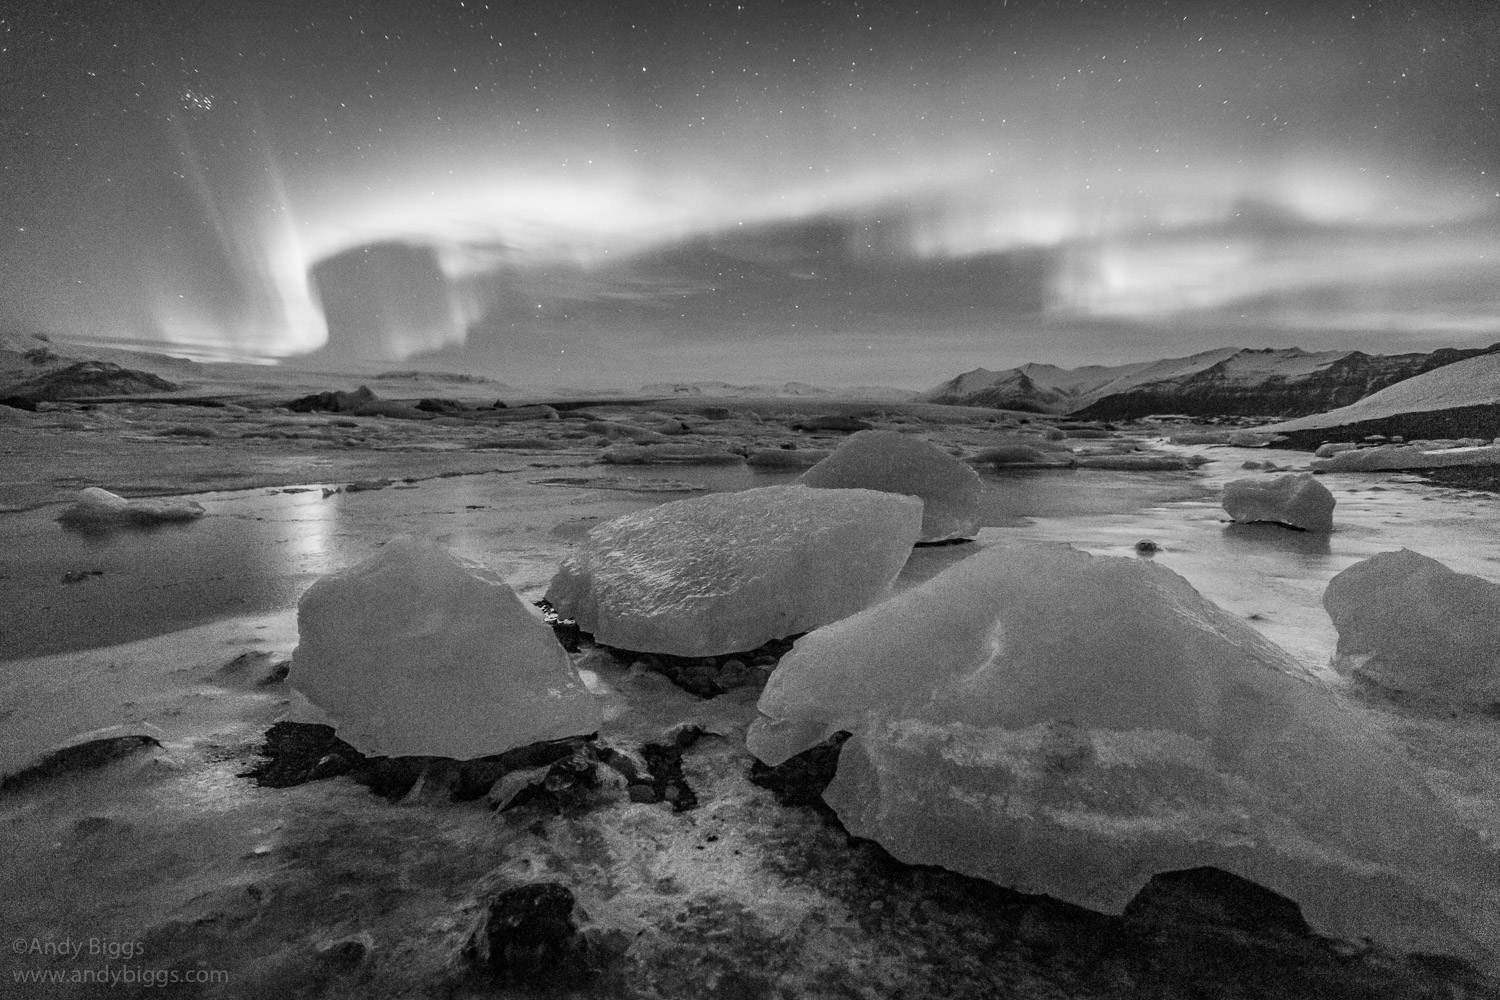 AndyBiggs_031113_Iceland_127.jpg